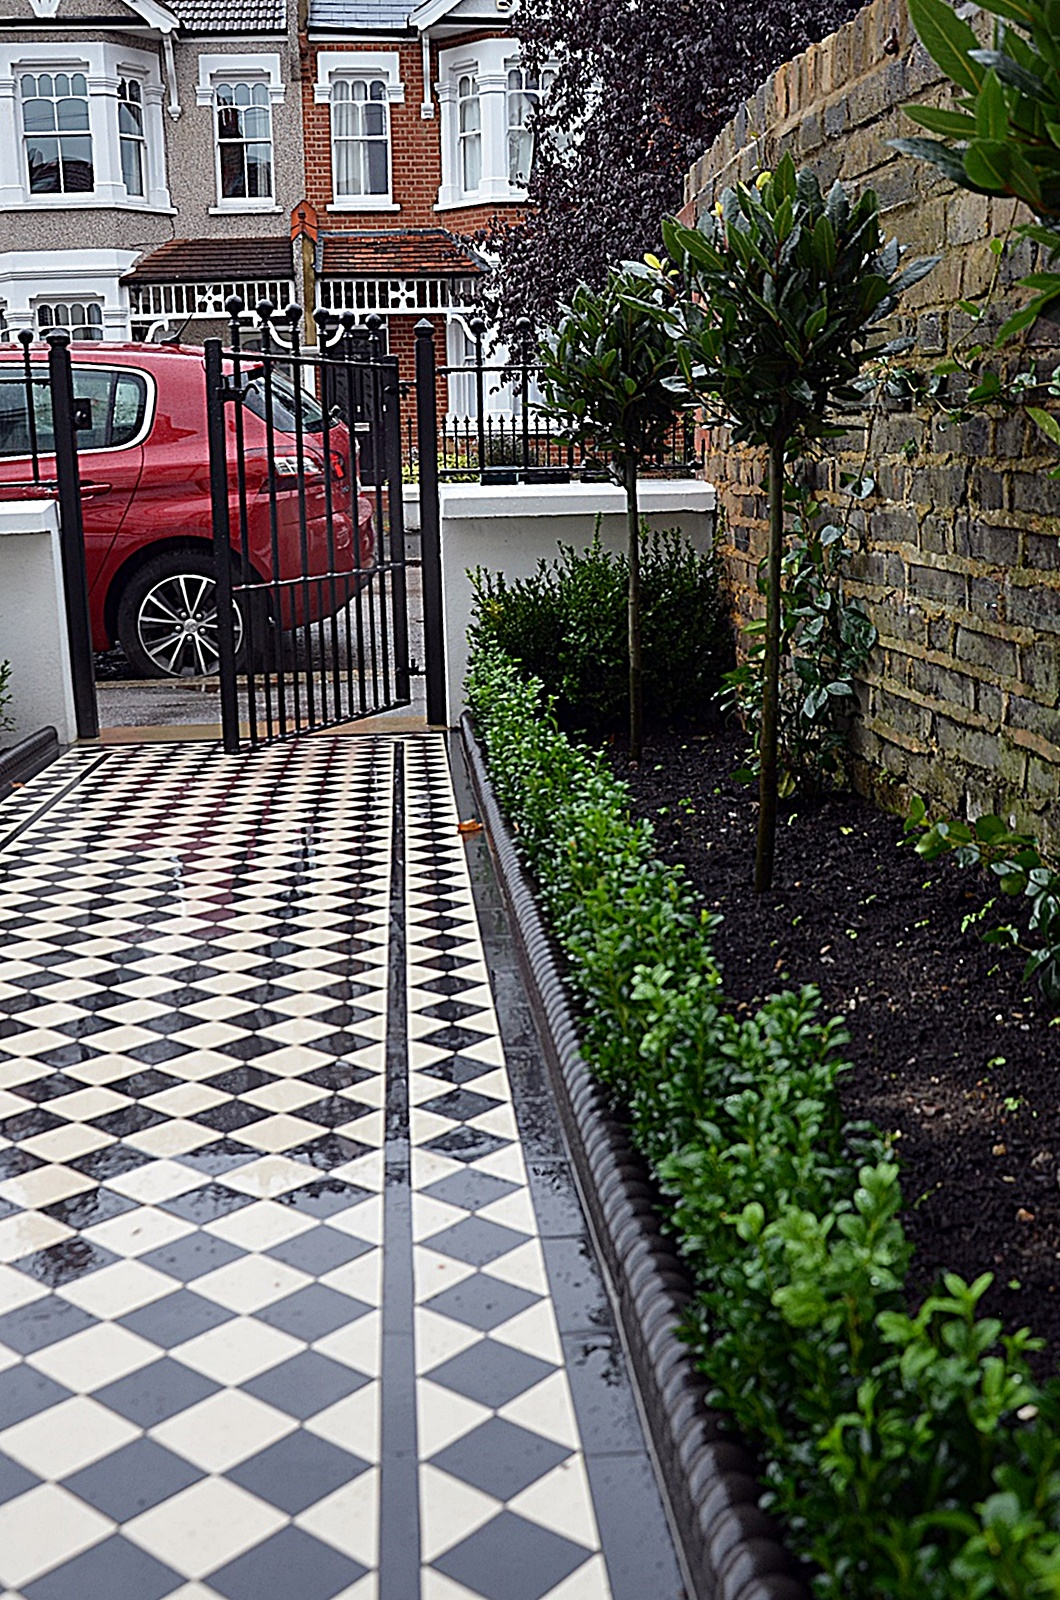 victorian-black-and-white-mosaic-planting-bark-charcoal-rope-edge-path-london-fulham-kensington-mayfair